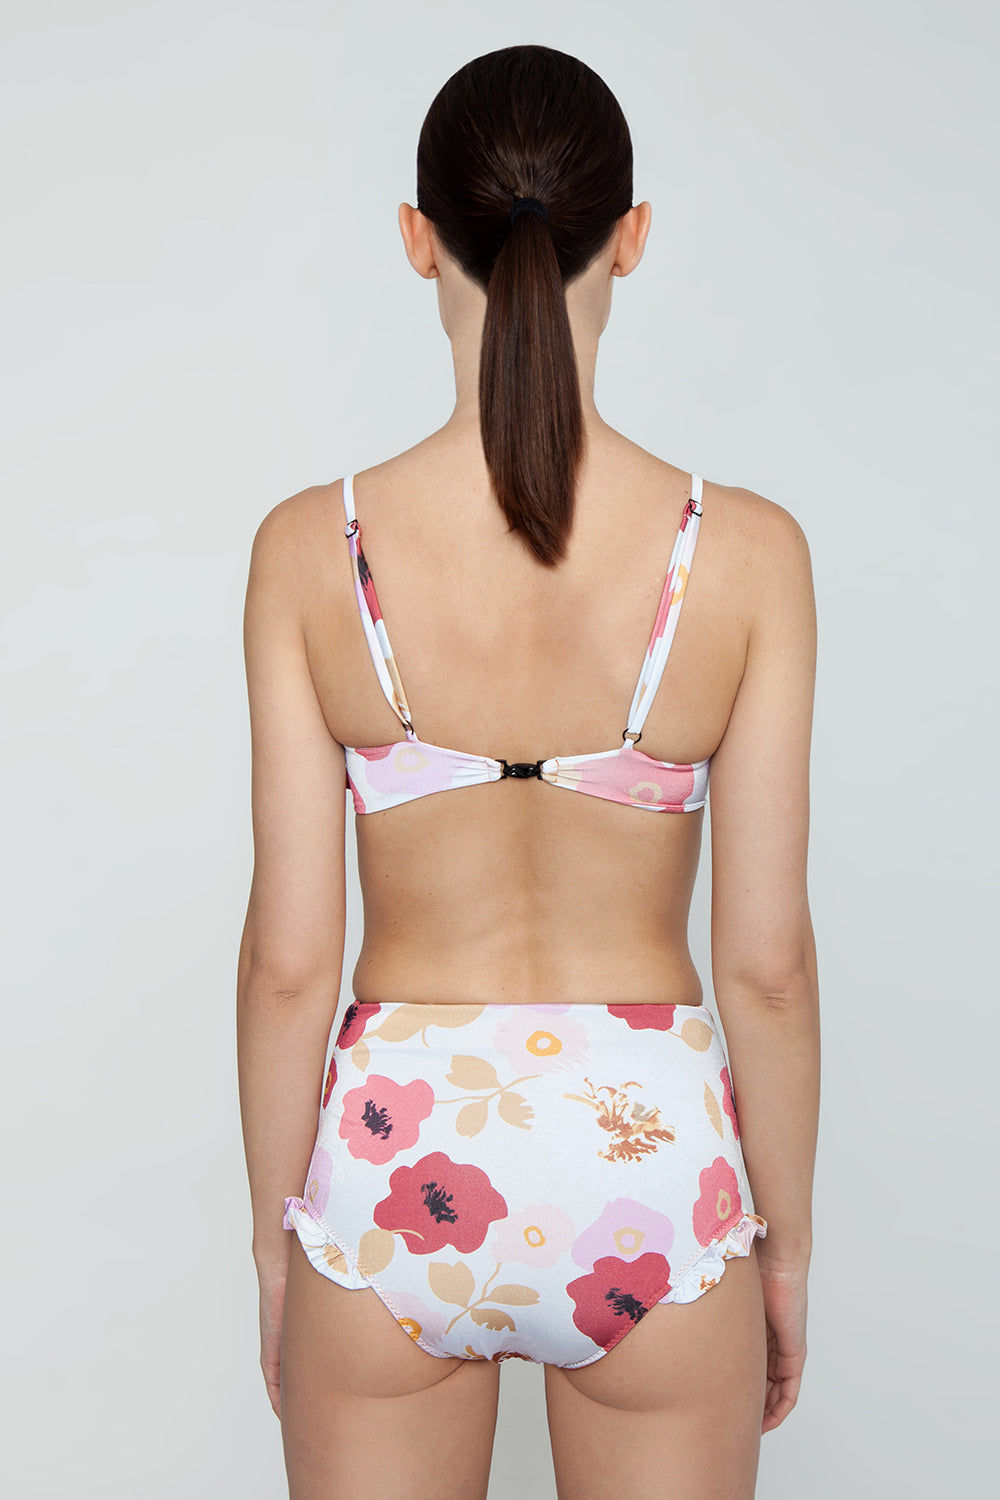 CLUBE BOSSA Brigida High Waist Bikini Bottom - Pepper La Beija Floral Print Bikini Bottom | Pepper La Beija Floral Print| CLUBE BOSSA Brigida High Waist Bikini Bottom - Pepper La Beija Floral Print. Features:  High waist bikini bottom Ruffle edges Elastic waistband Floral print Back View